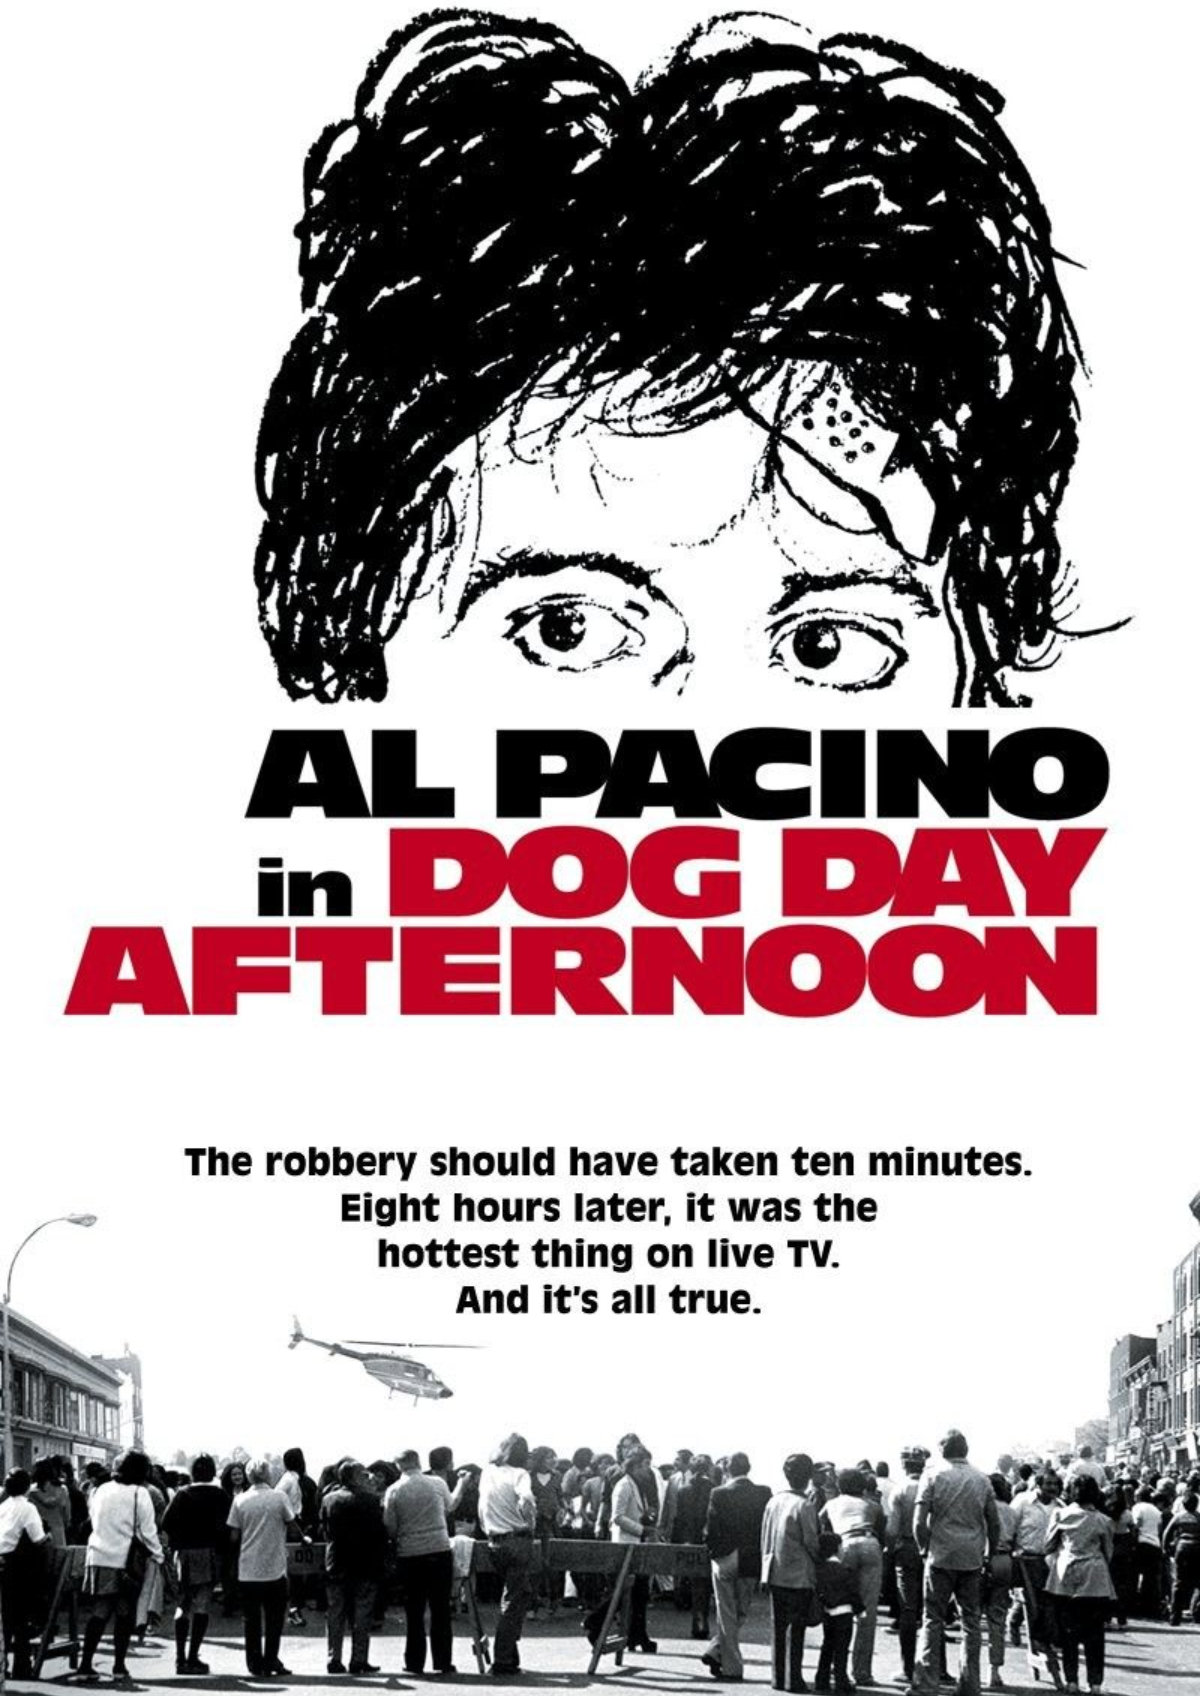 'Dog Day Afternoon' movie poster